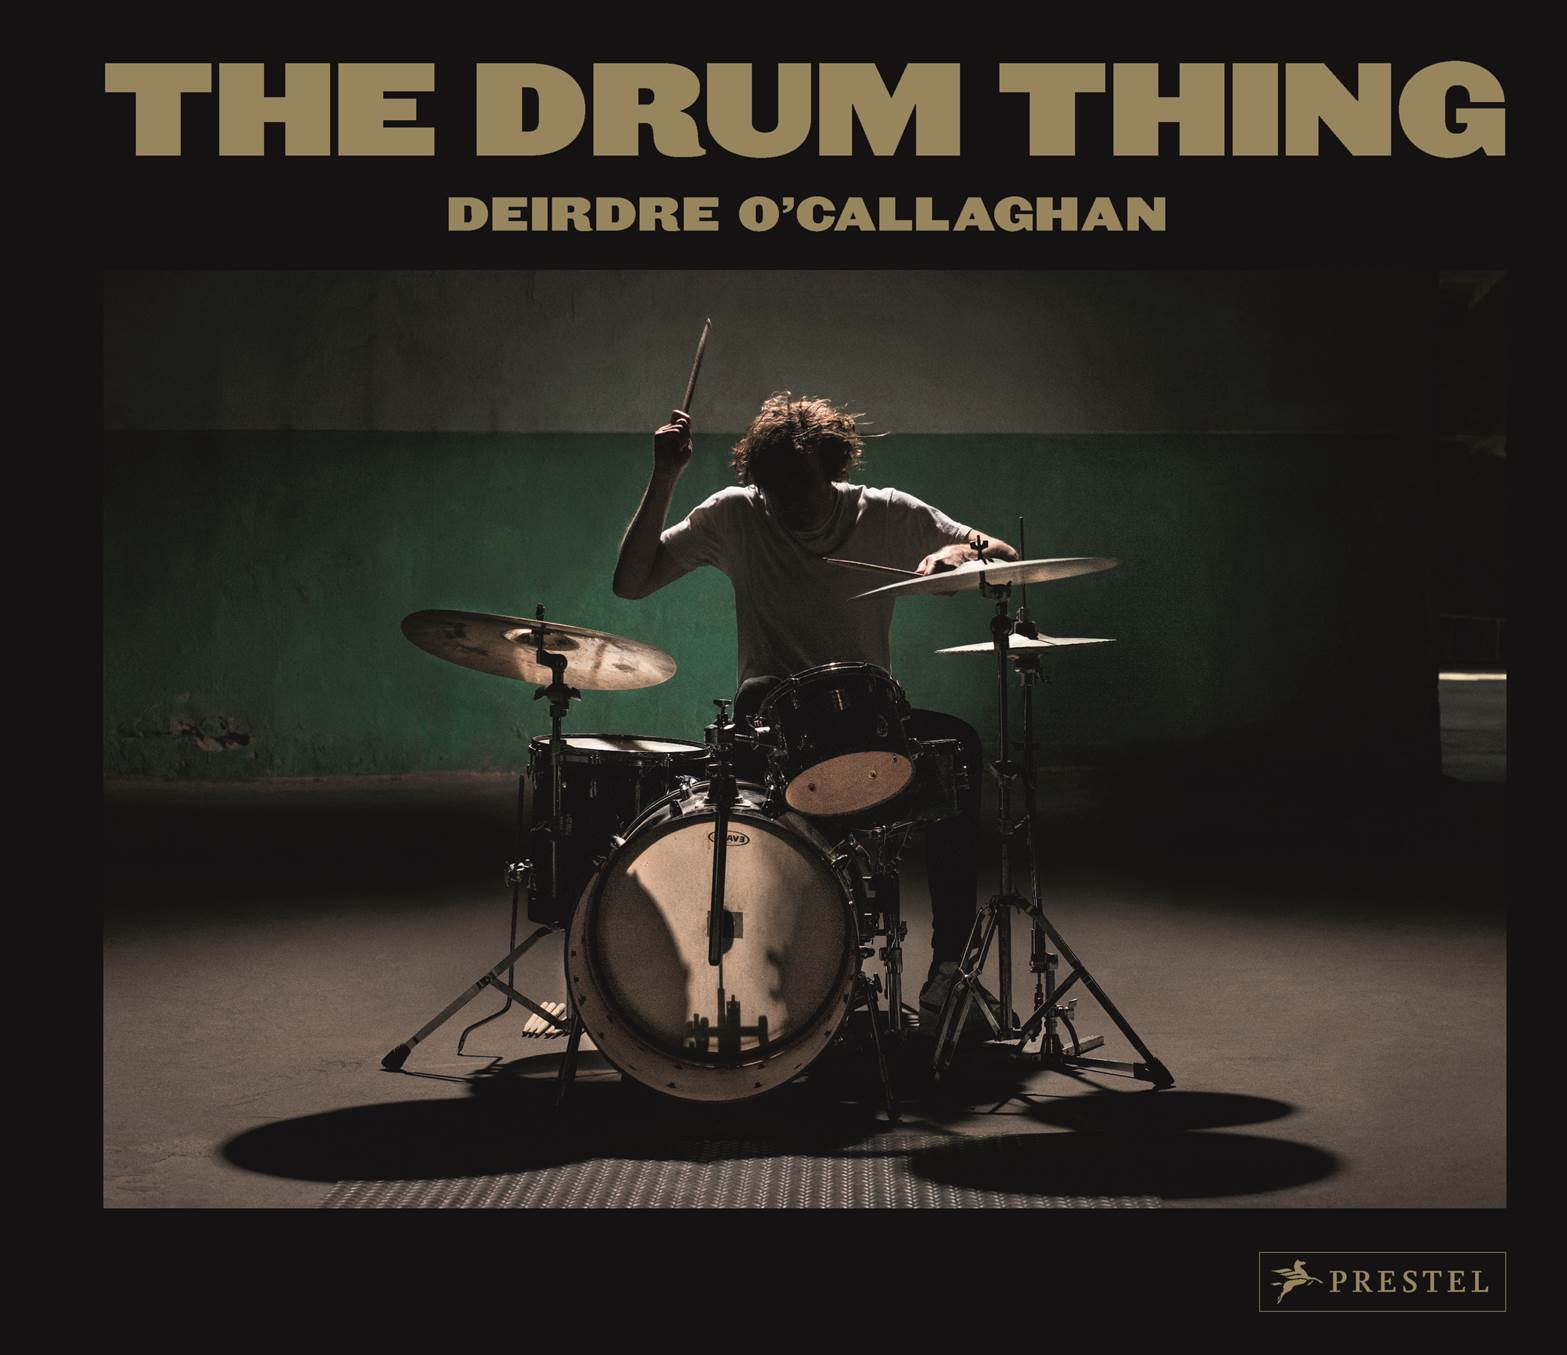 """The Drum Thing"" by Deirdre O'Callaghan"